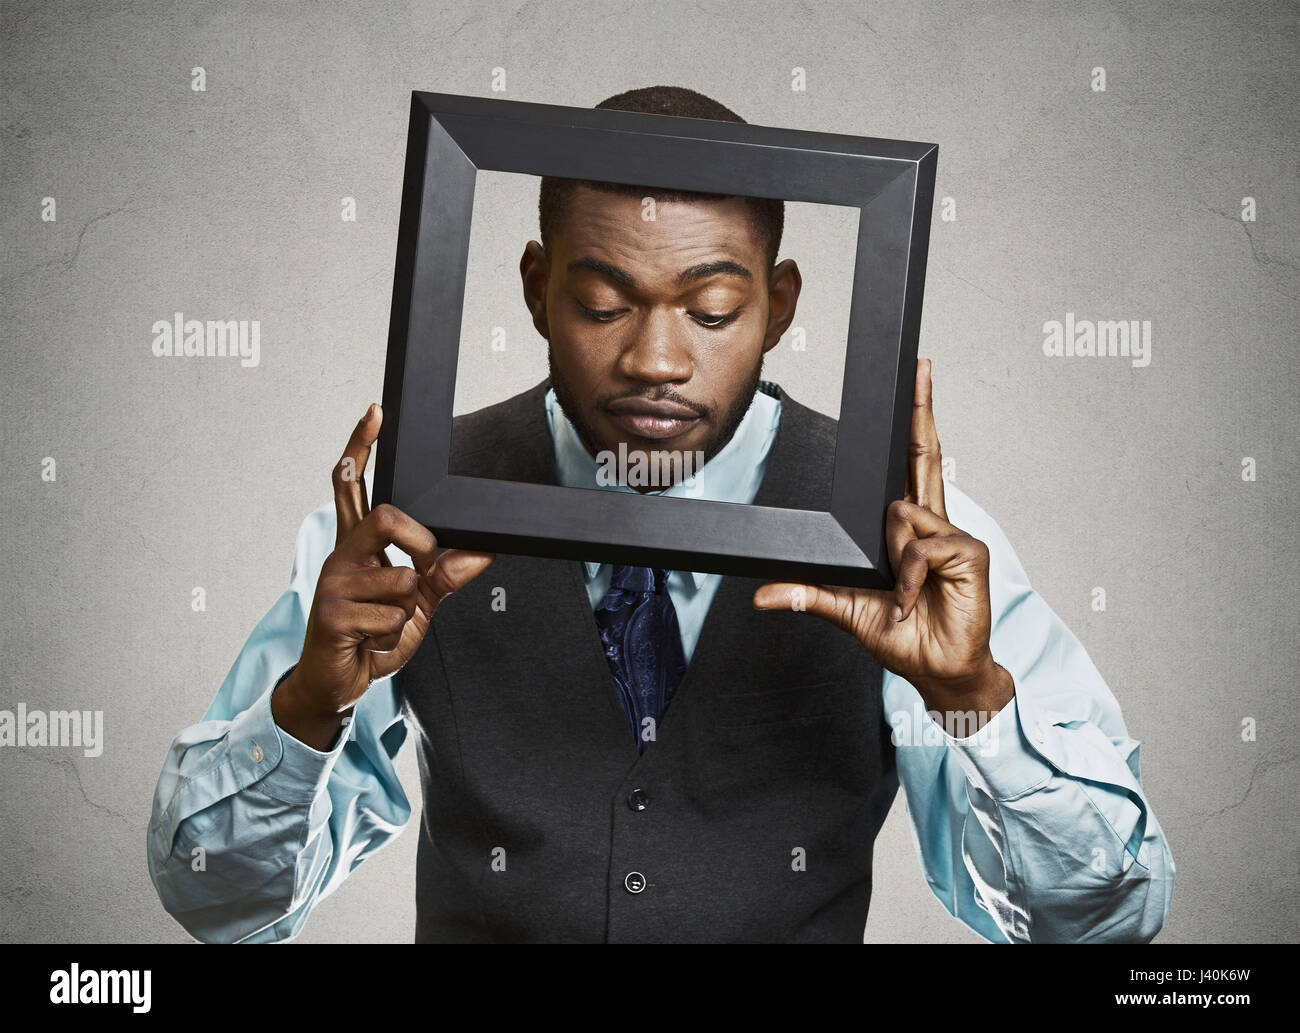 Closeup portrait businessman, executive looking down curious, surprised confused through black picture frame thinking - Stock Image